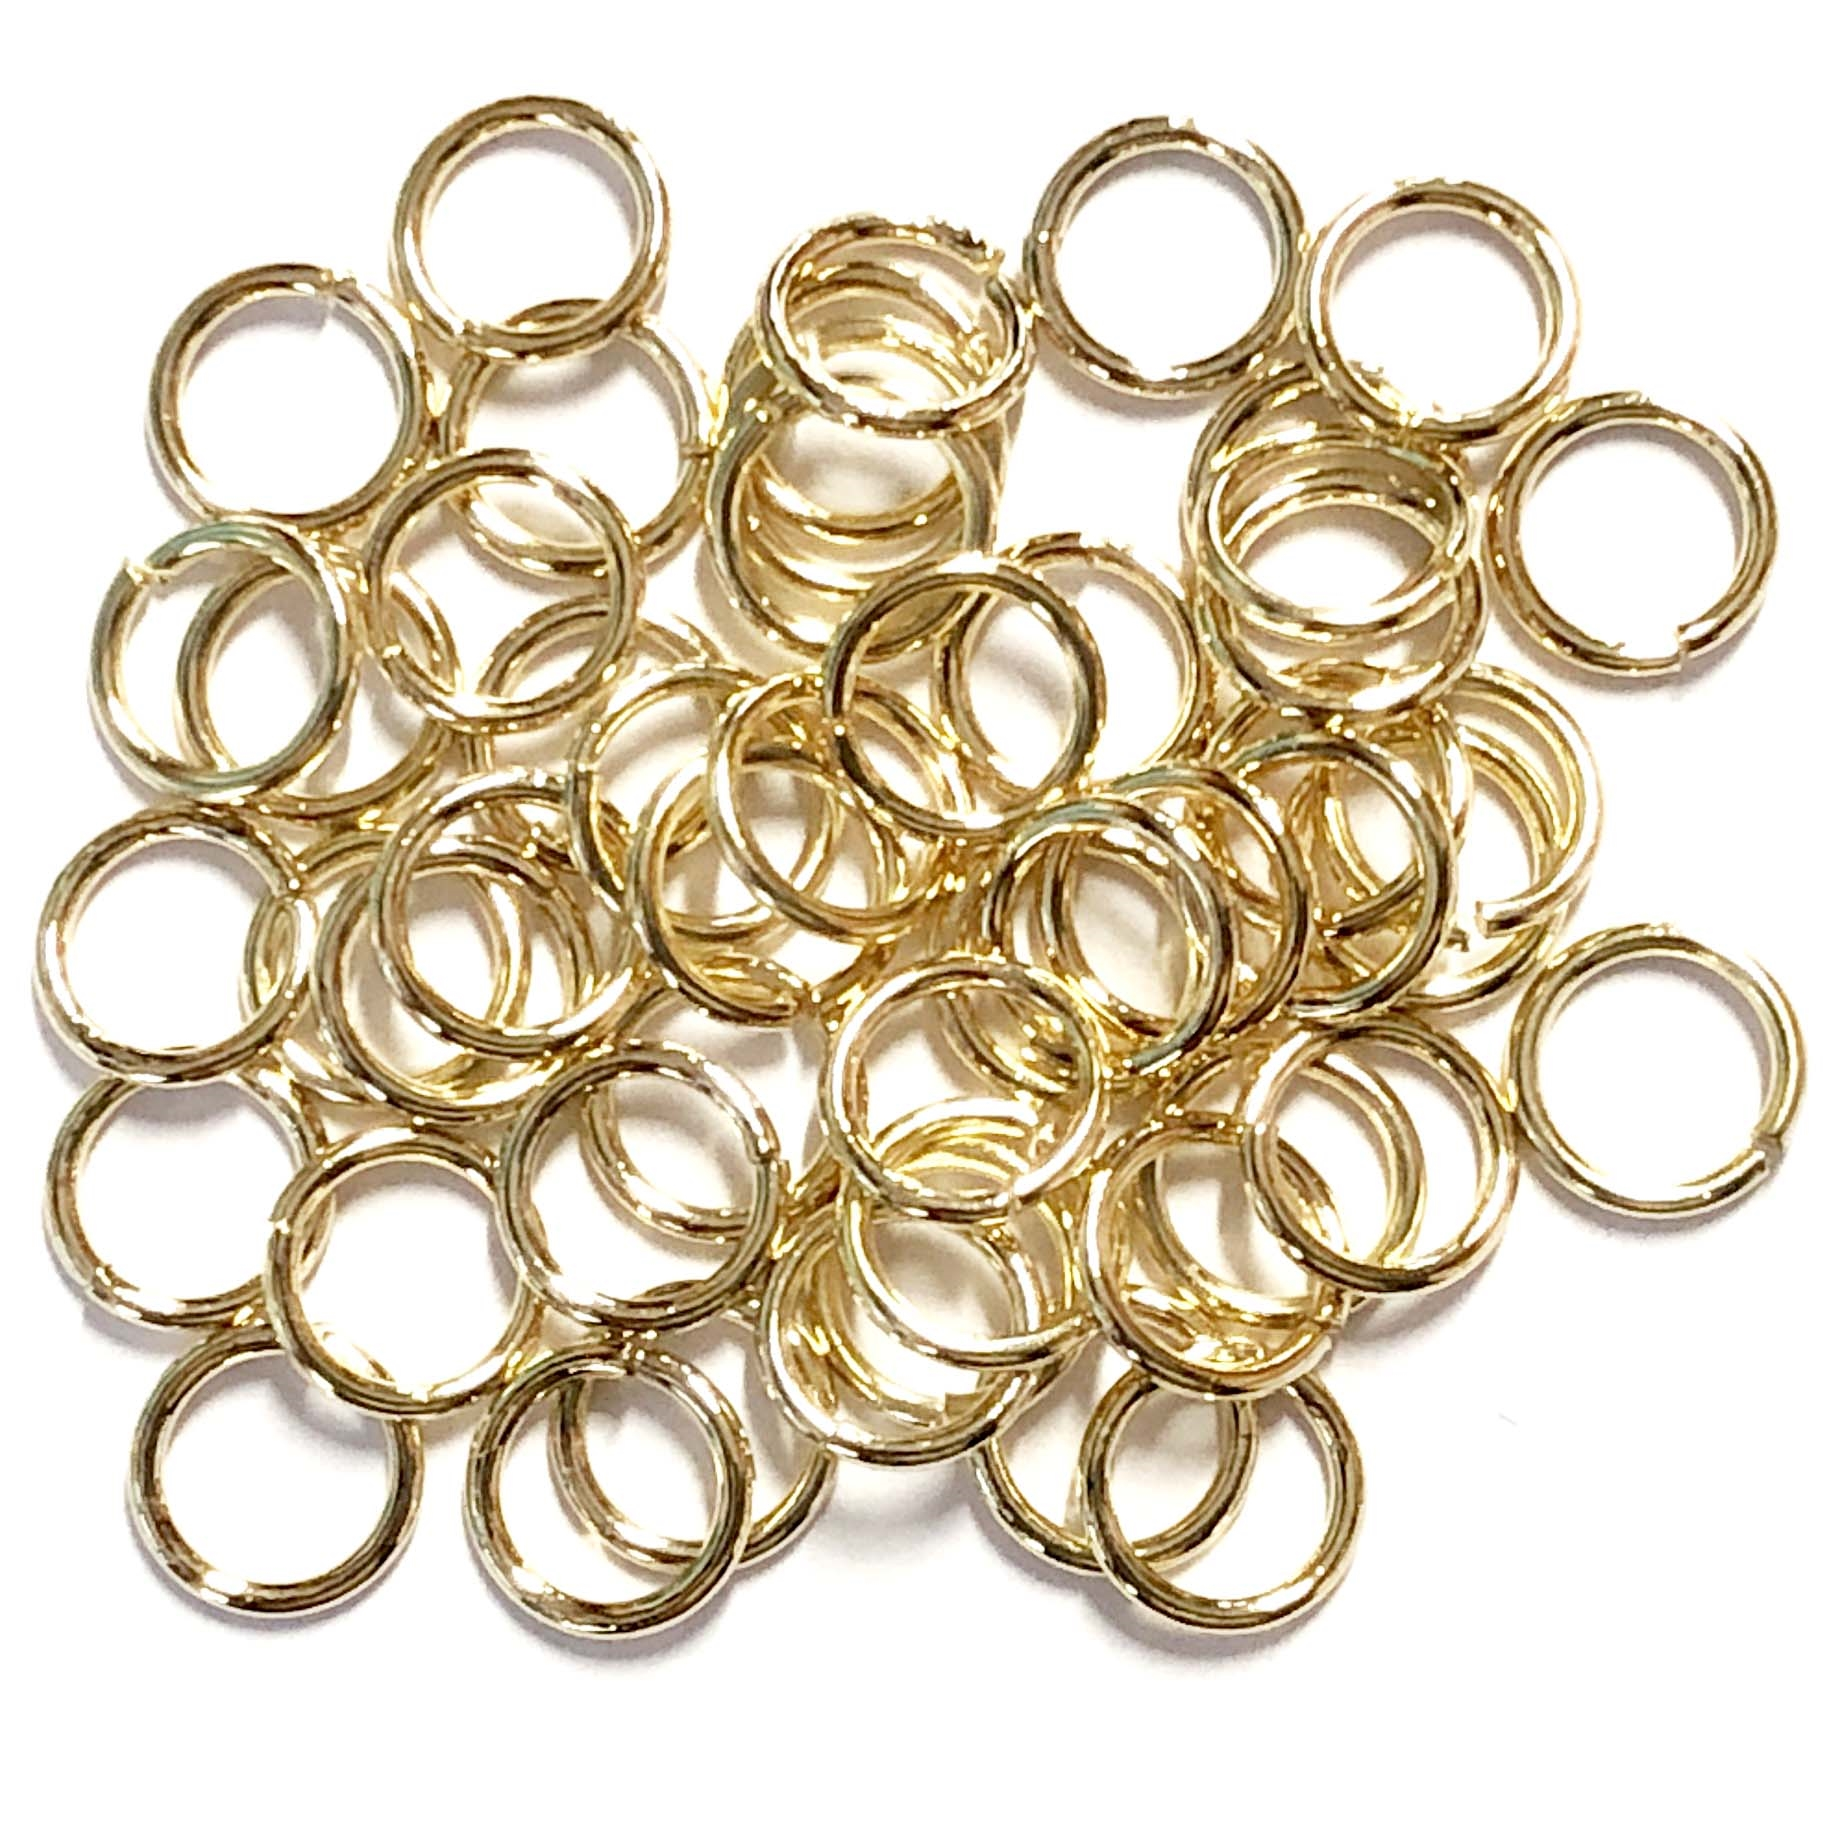 Gold Jump Rings, Jumps, Jump Rings, Gold, 8mm, 18 Gauge, Rings, Gold Plated jump rings, 50 pieces, Us Made, Nickel Free, B'sue Boutiques, Jewelry Findings, Vintage Supplies, Jewelry Supplies, 04115